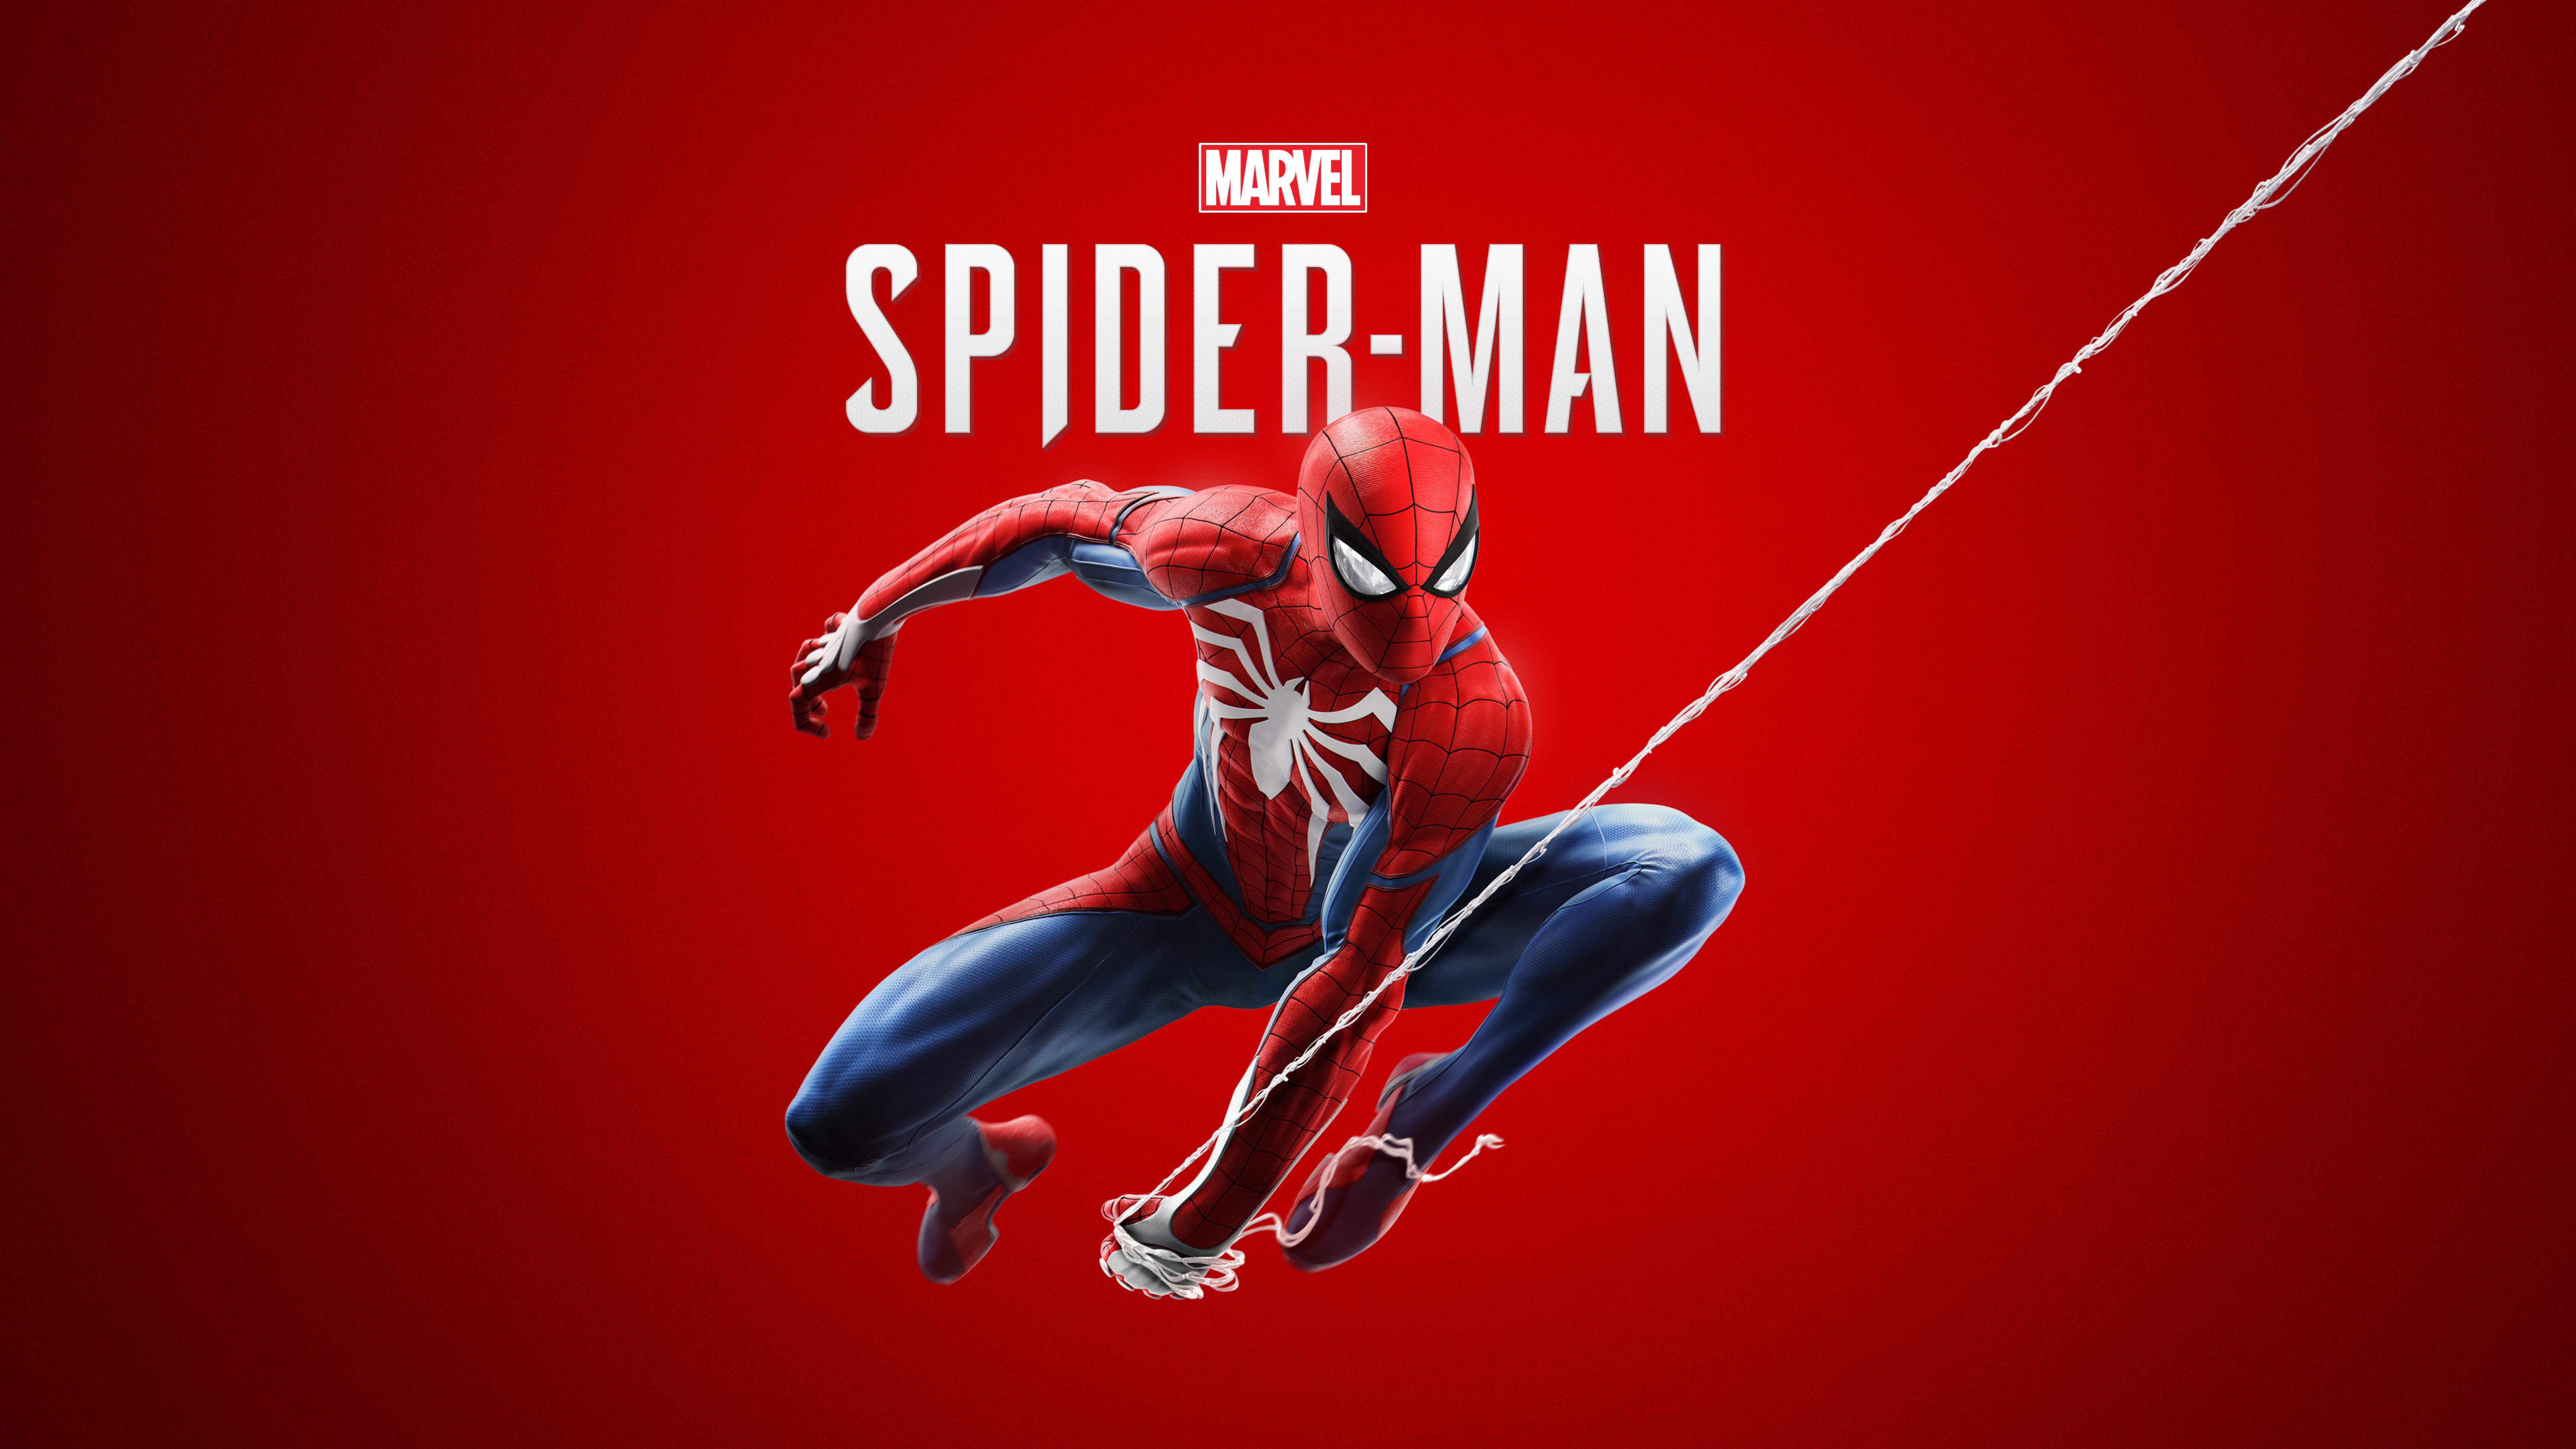 Download Spider Man 2018 Ps4 Game 1440x2560 Resolution, HD ...